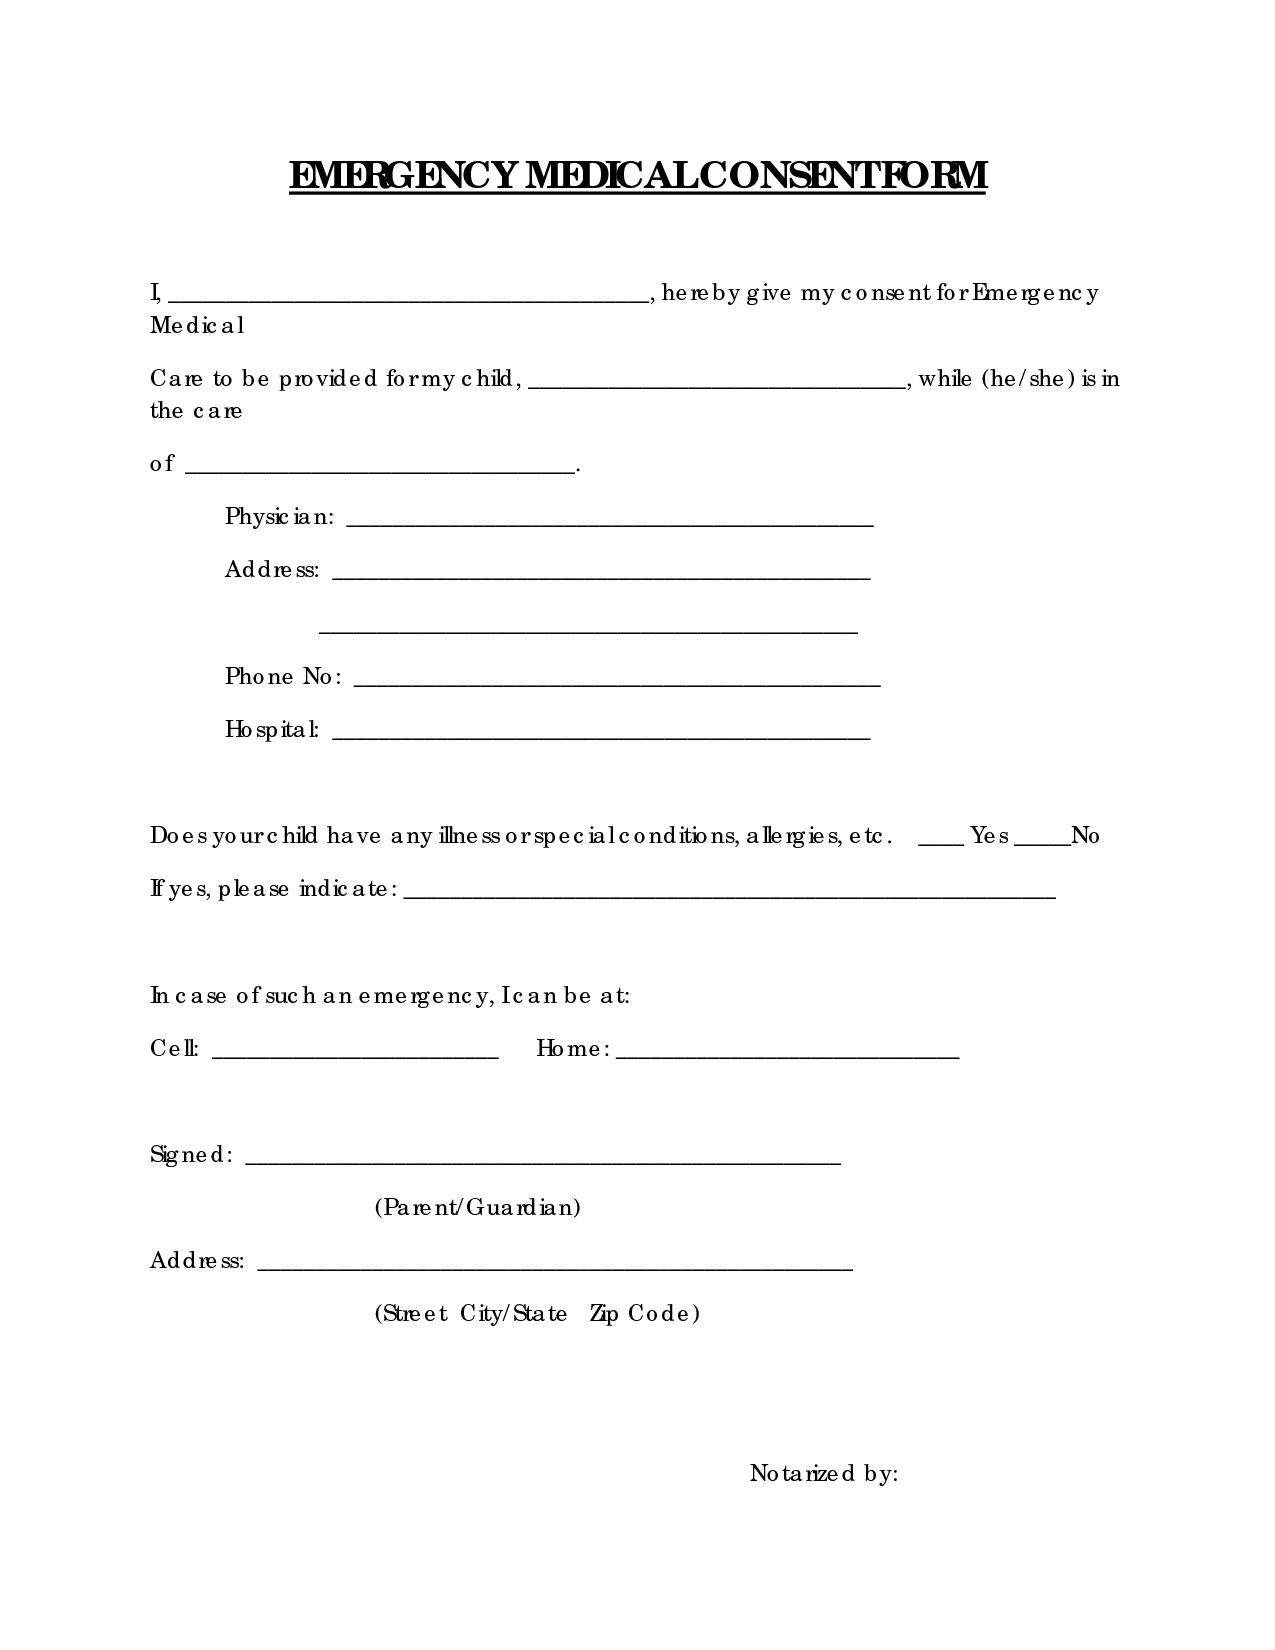 Medical Consent Letter for Grandparents Template - Medical Consent form solarfm